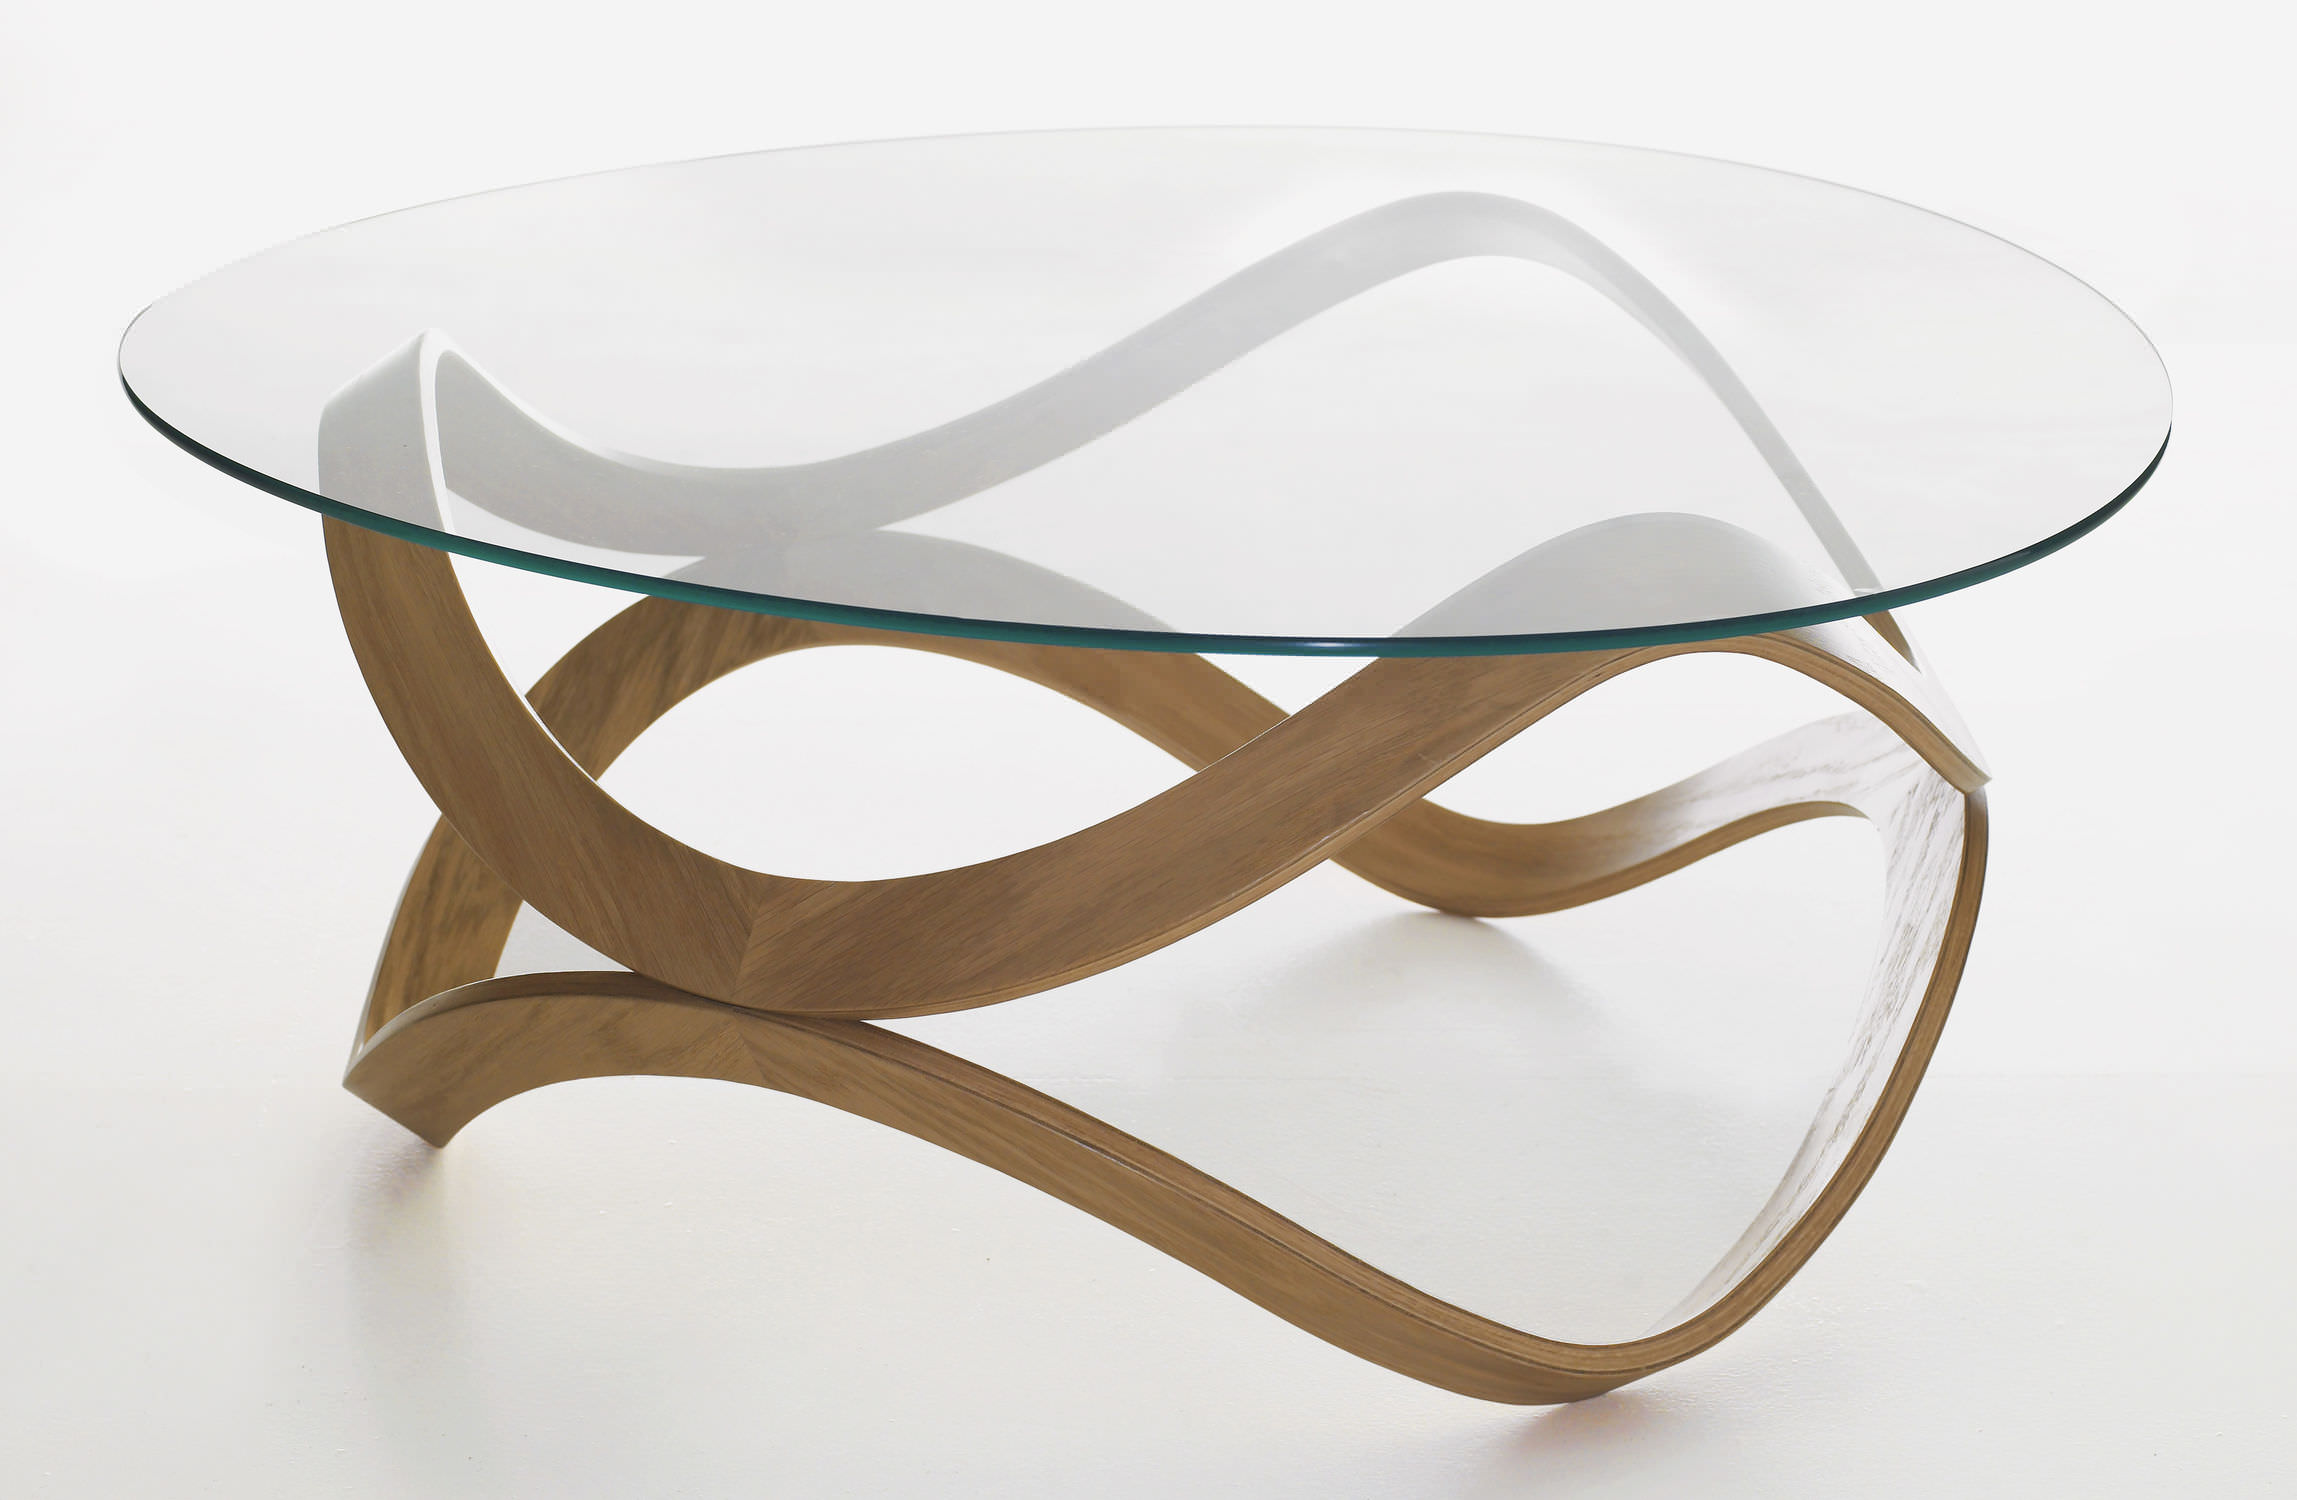 Contemporary Coffee Tables Glass Glamorous Contemporary Coffee Table  Glass  Oak  Ash  Newtond.sunaga . Decorating Design